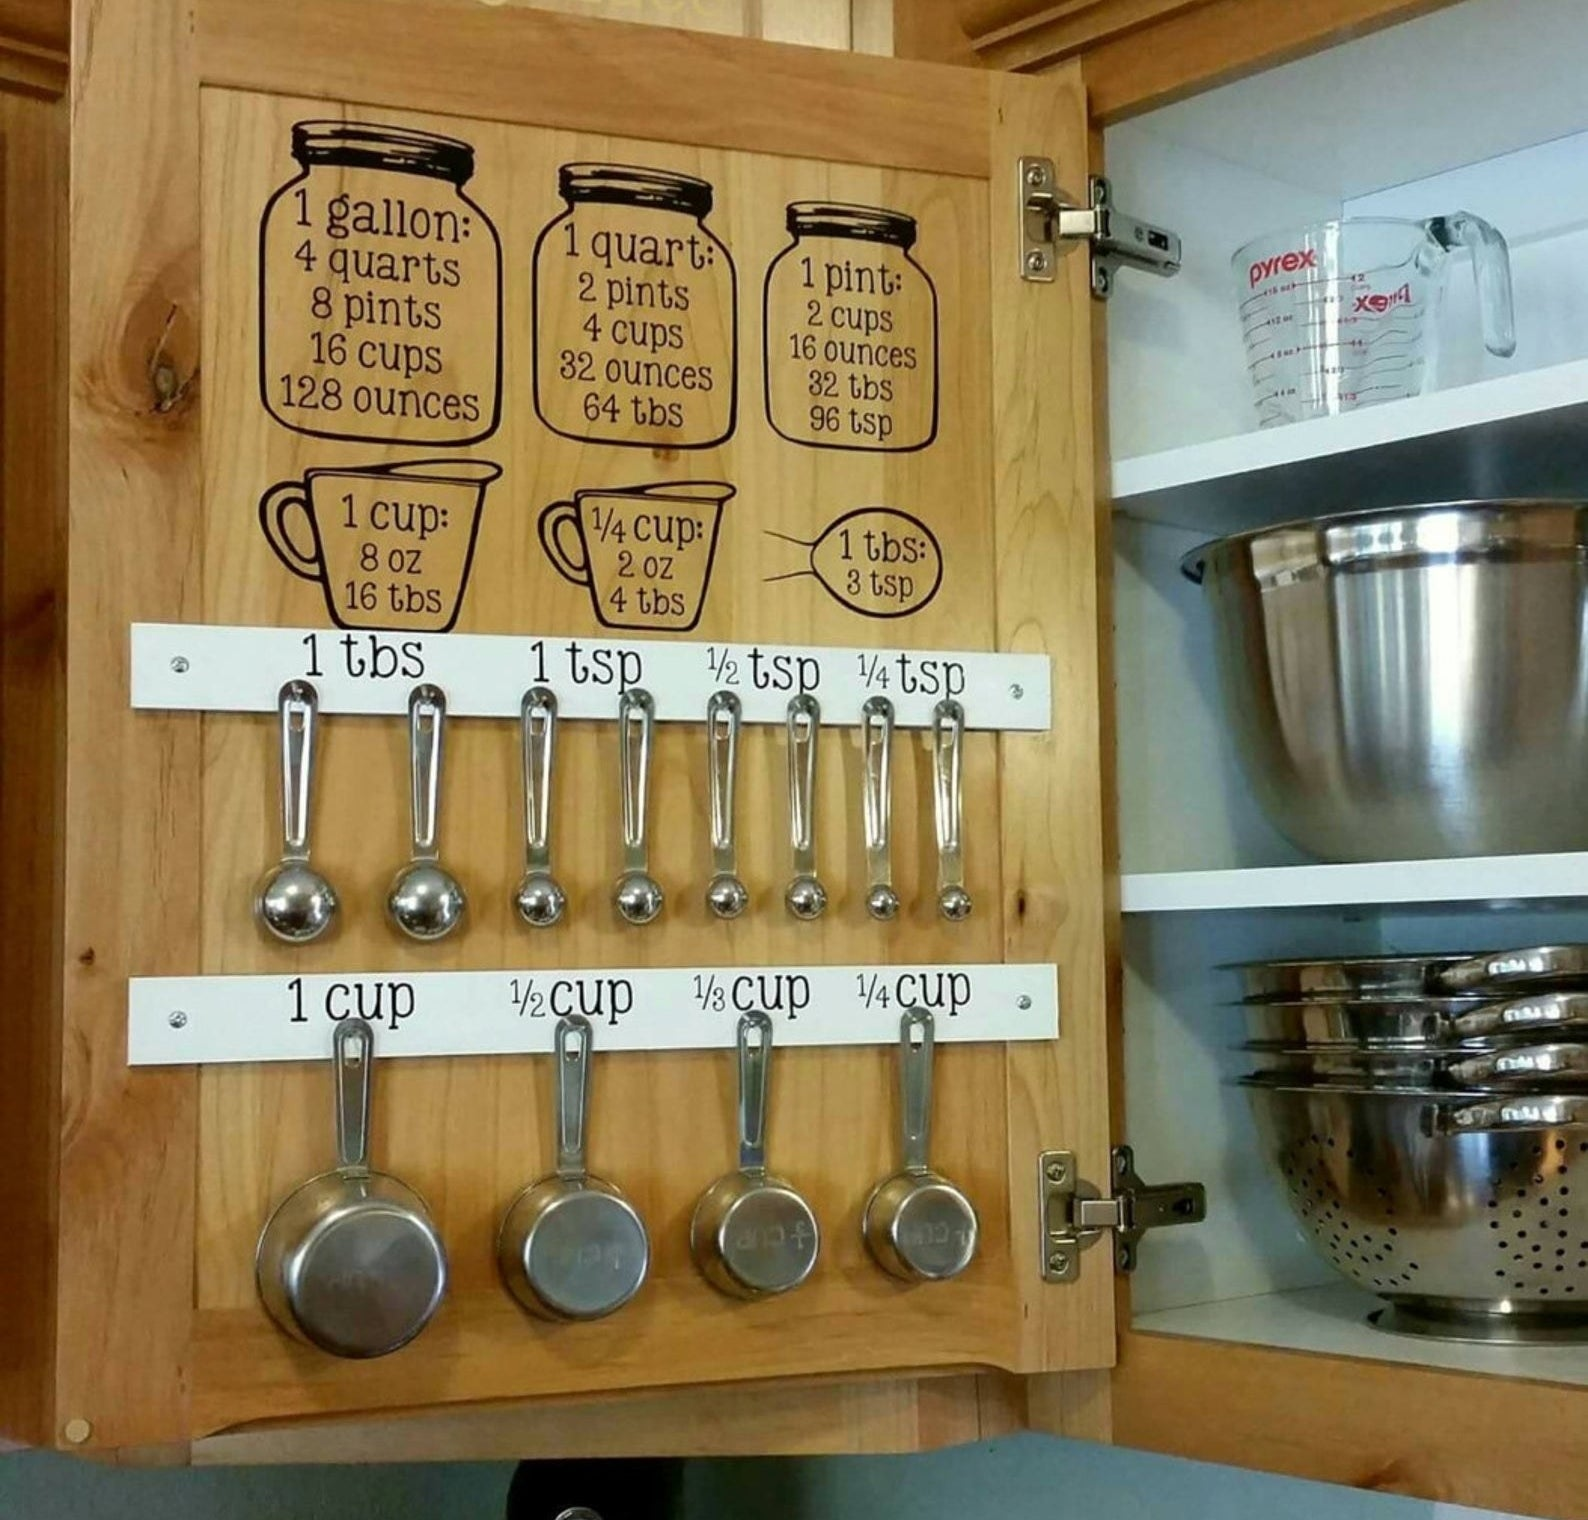 Decals hanging inside of a kitchen cabinet